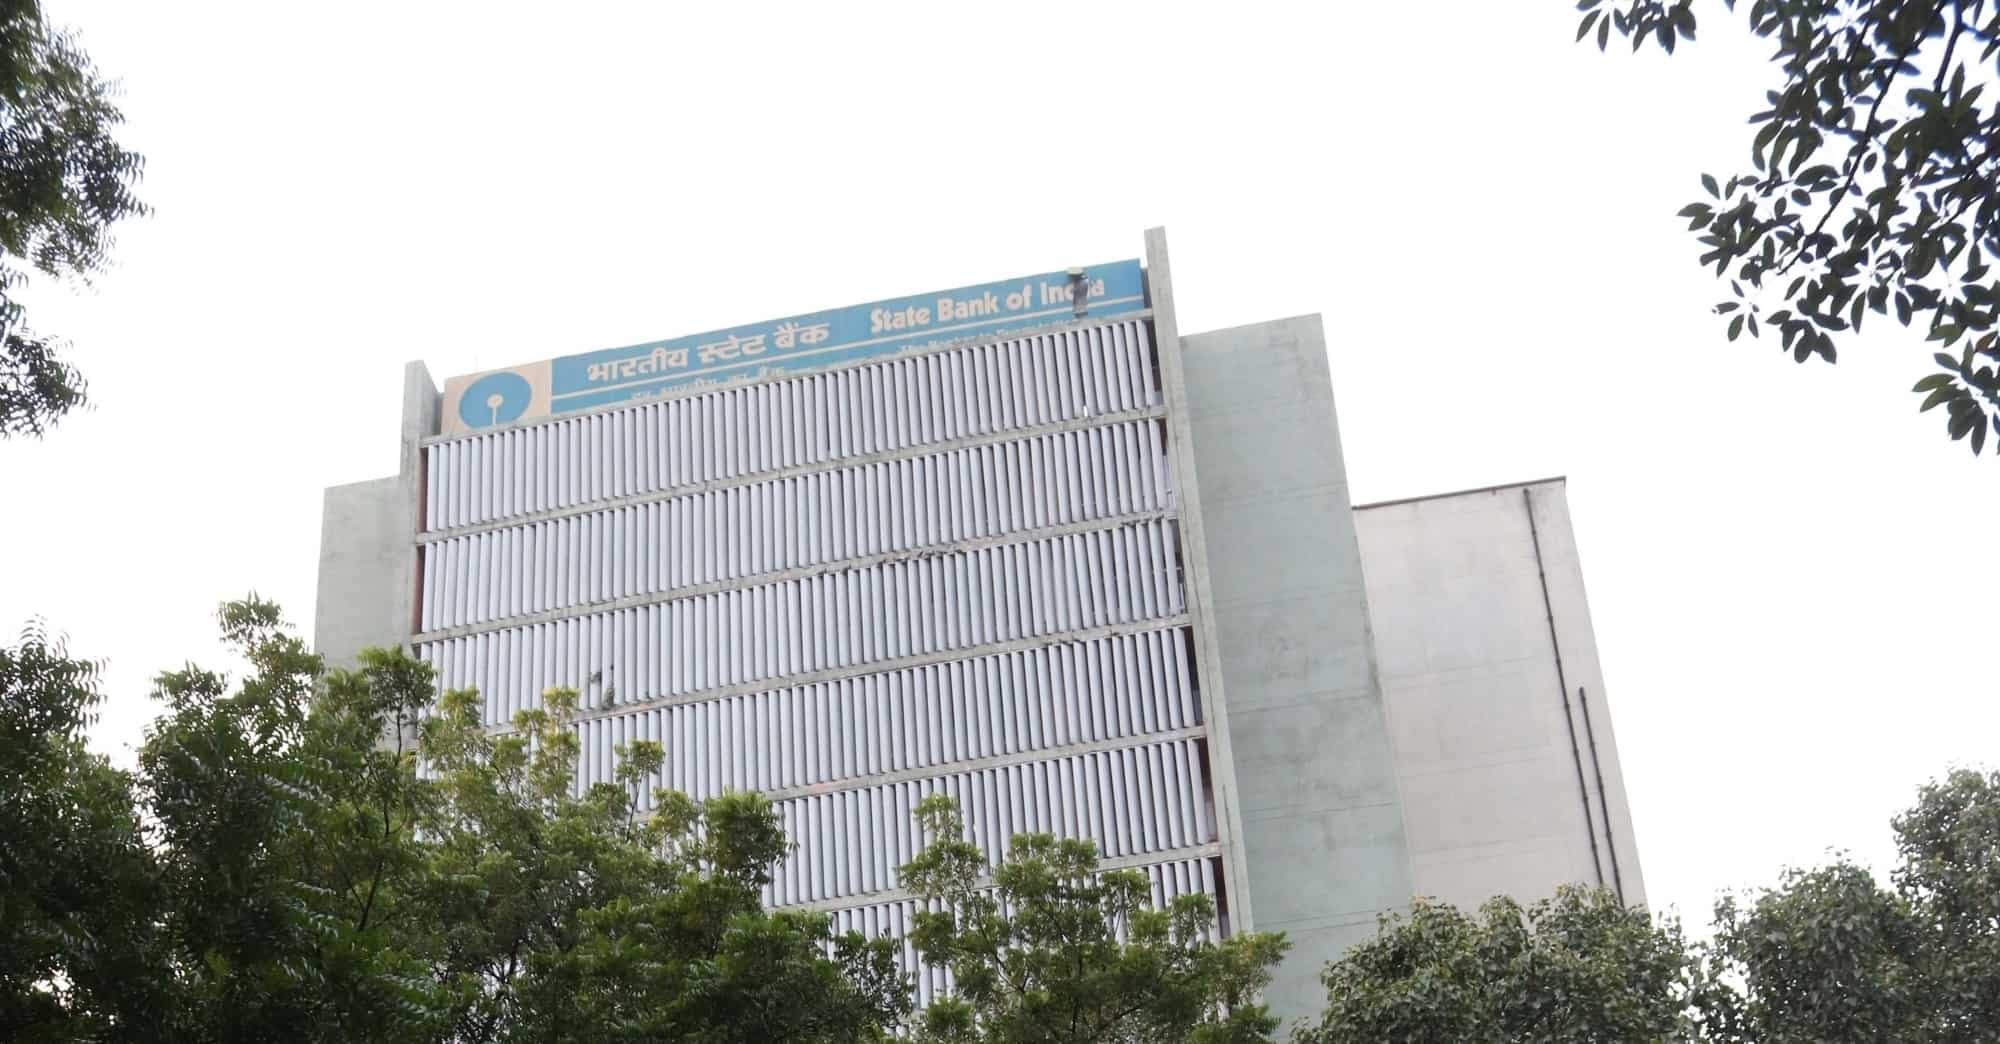 Sbi Rate Cut Here Are 11 Banks Who Continue To Offer Higher Savings Interest Rates